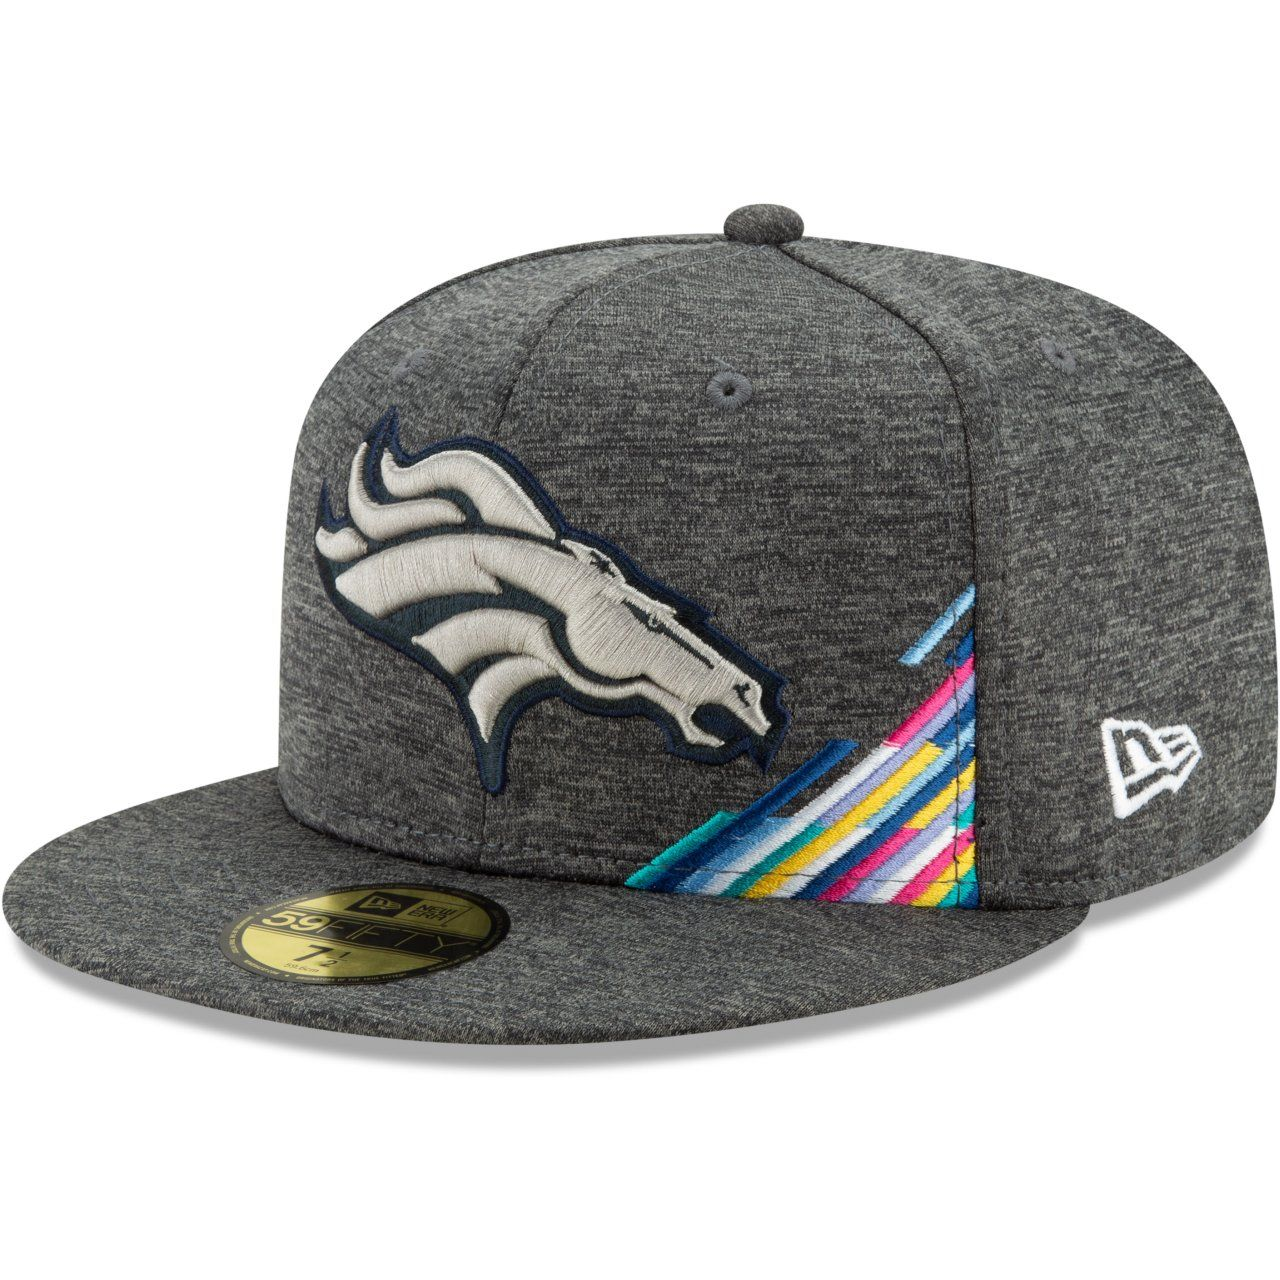 amfoo - New Era 59Fifty Fitted Cap - CRUCIAL CATCH Denver Broncos